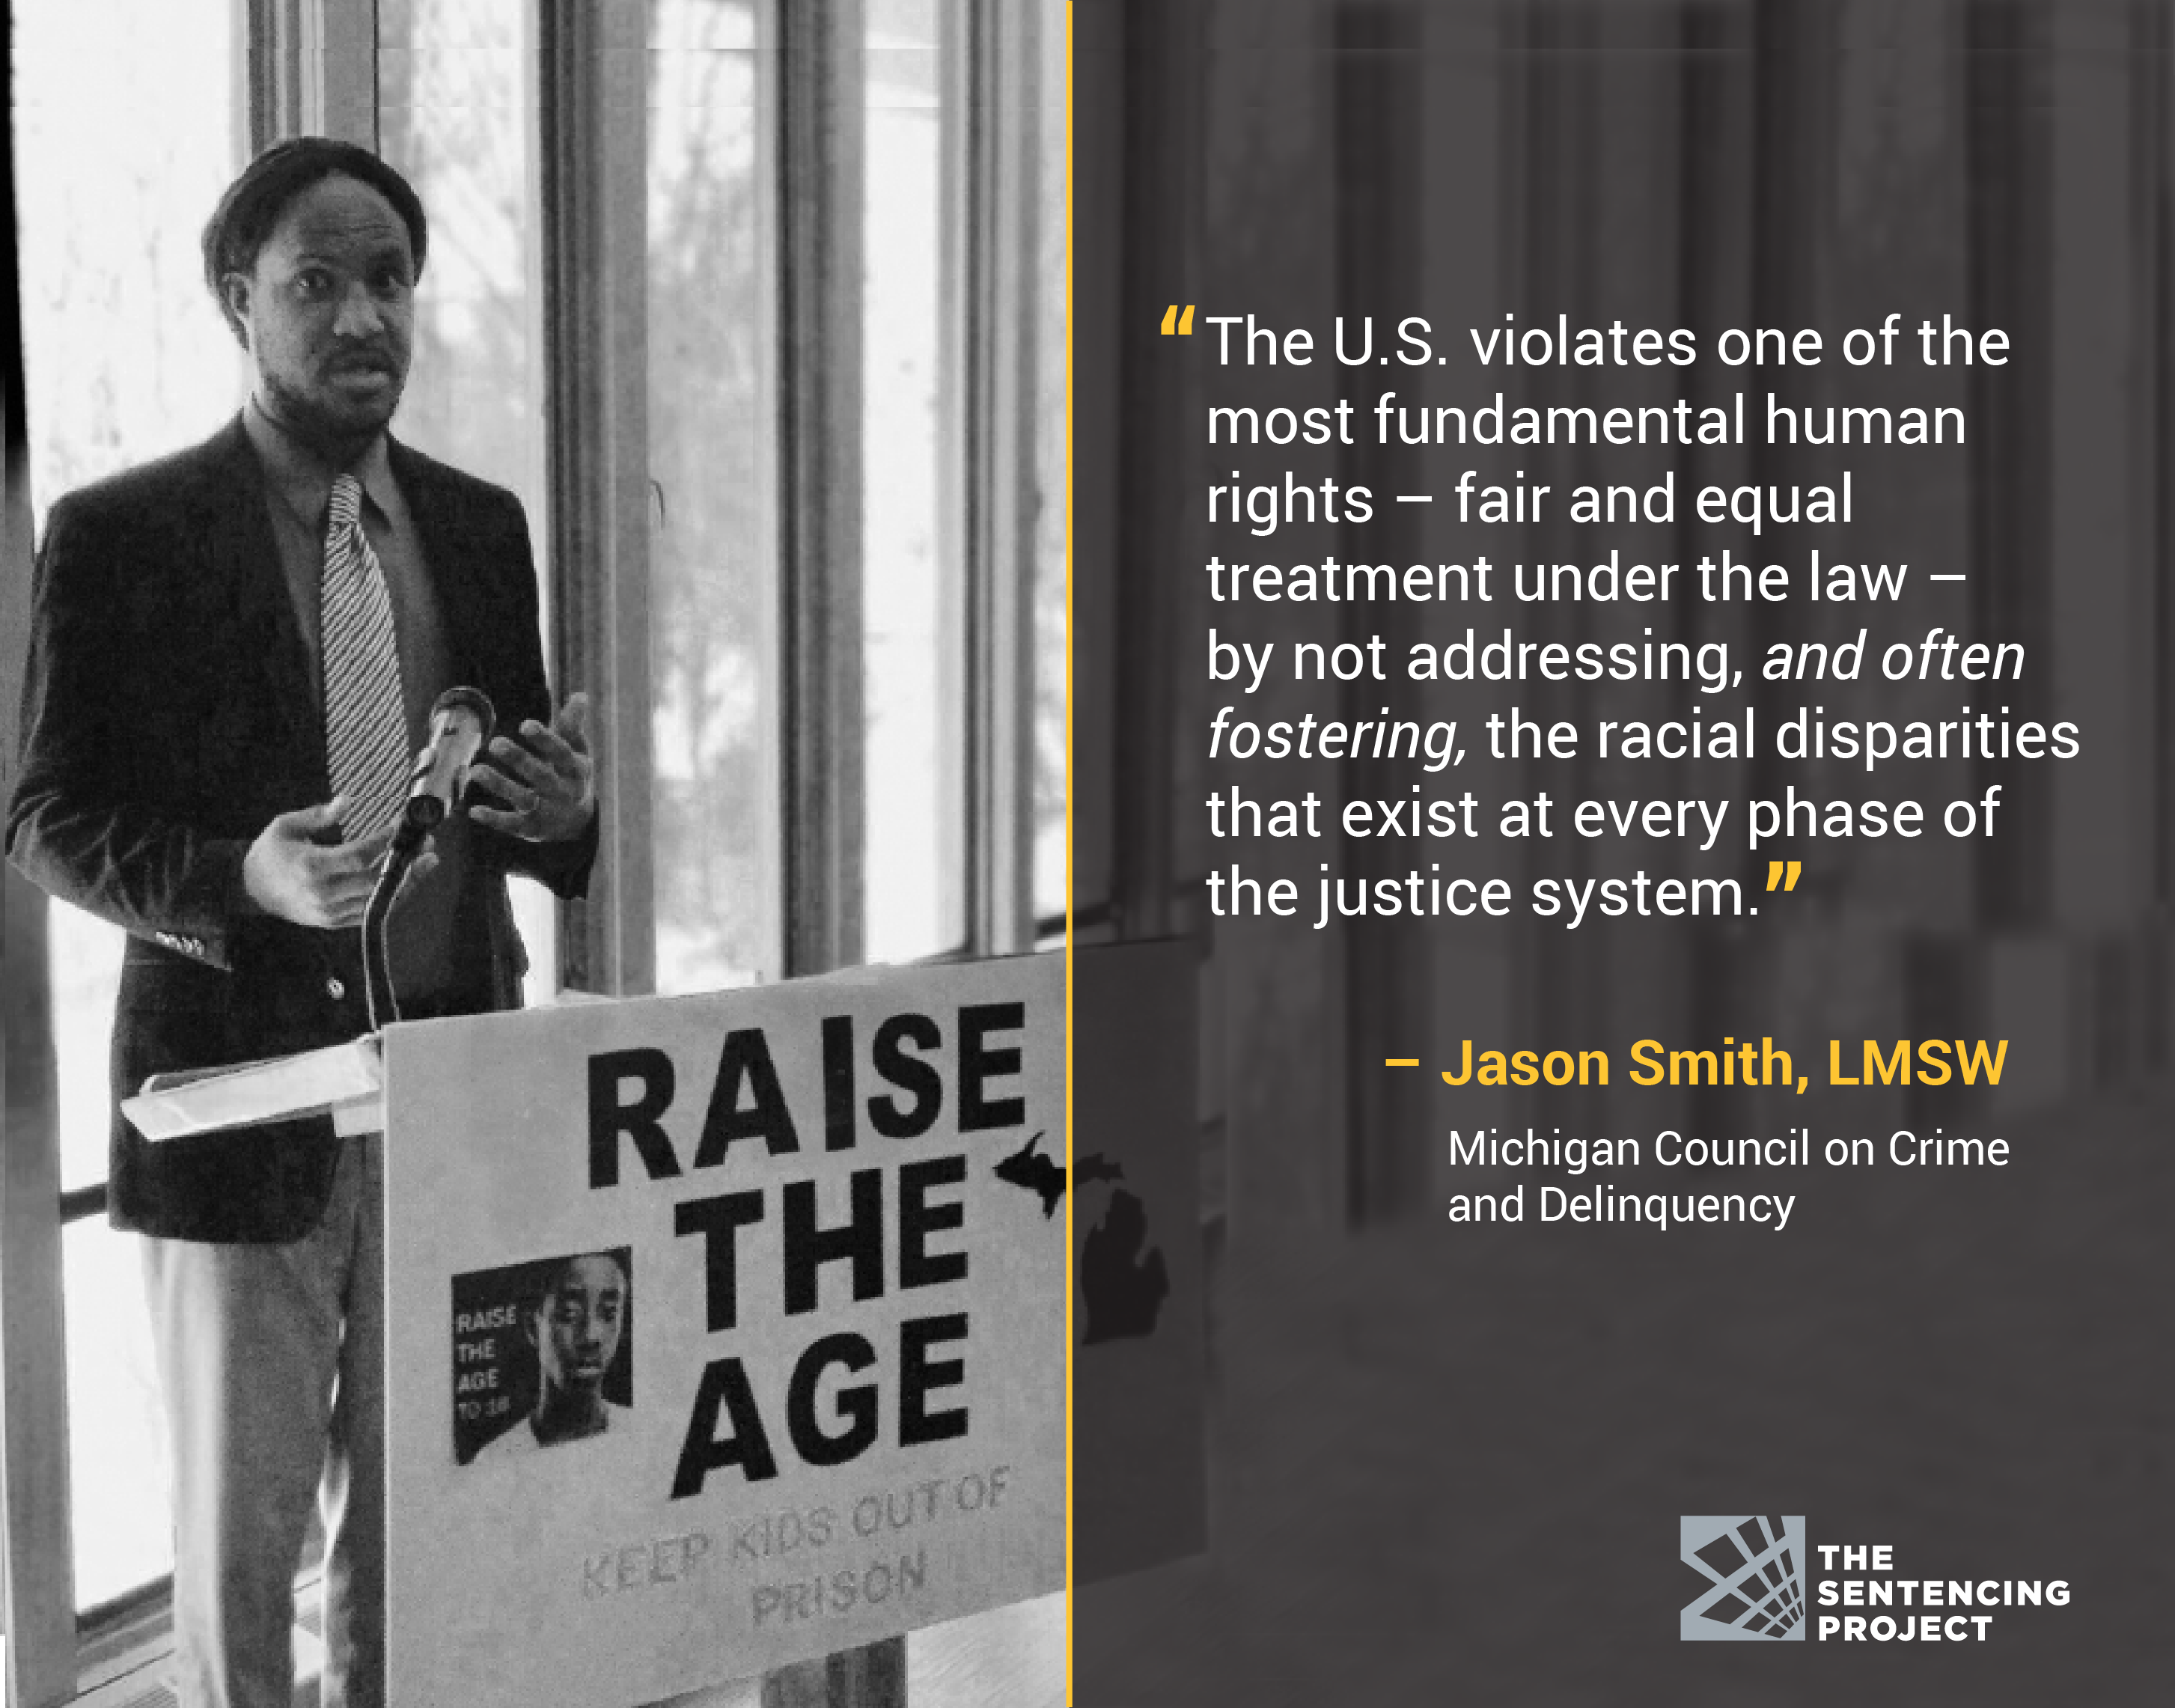 What has been the impact of the civil rights movement on crime and criminal justice?